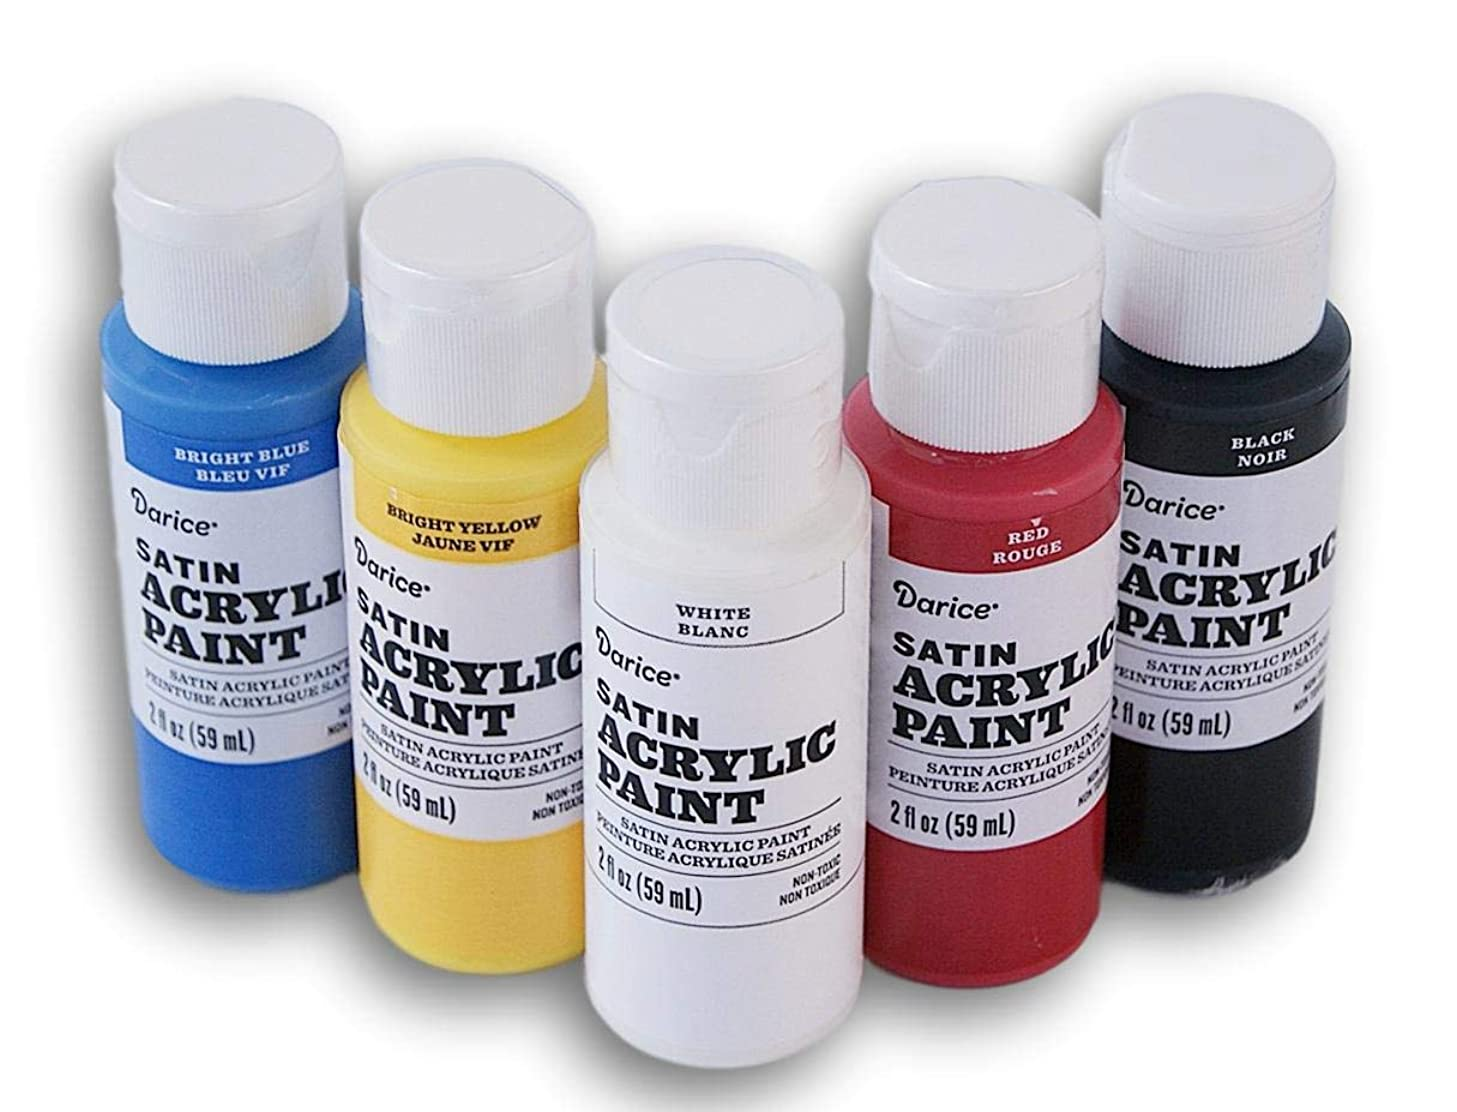 Primary Colors Satin Acrylic Paint Set - Black, White, Red, Bright Blue, Bright Yellow auaaxr3577649